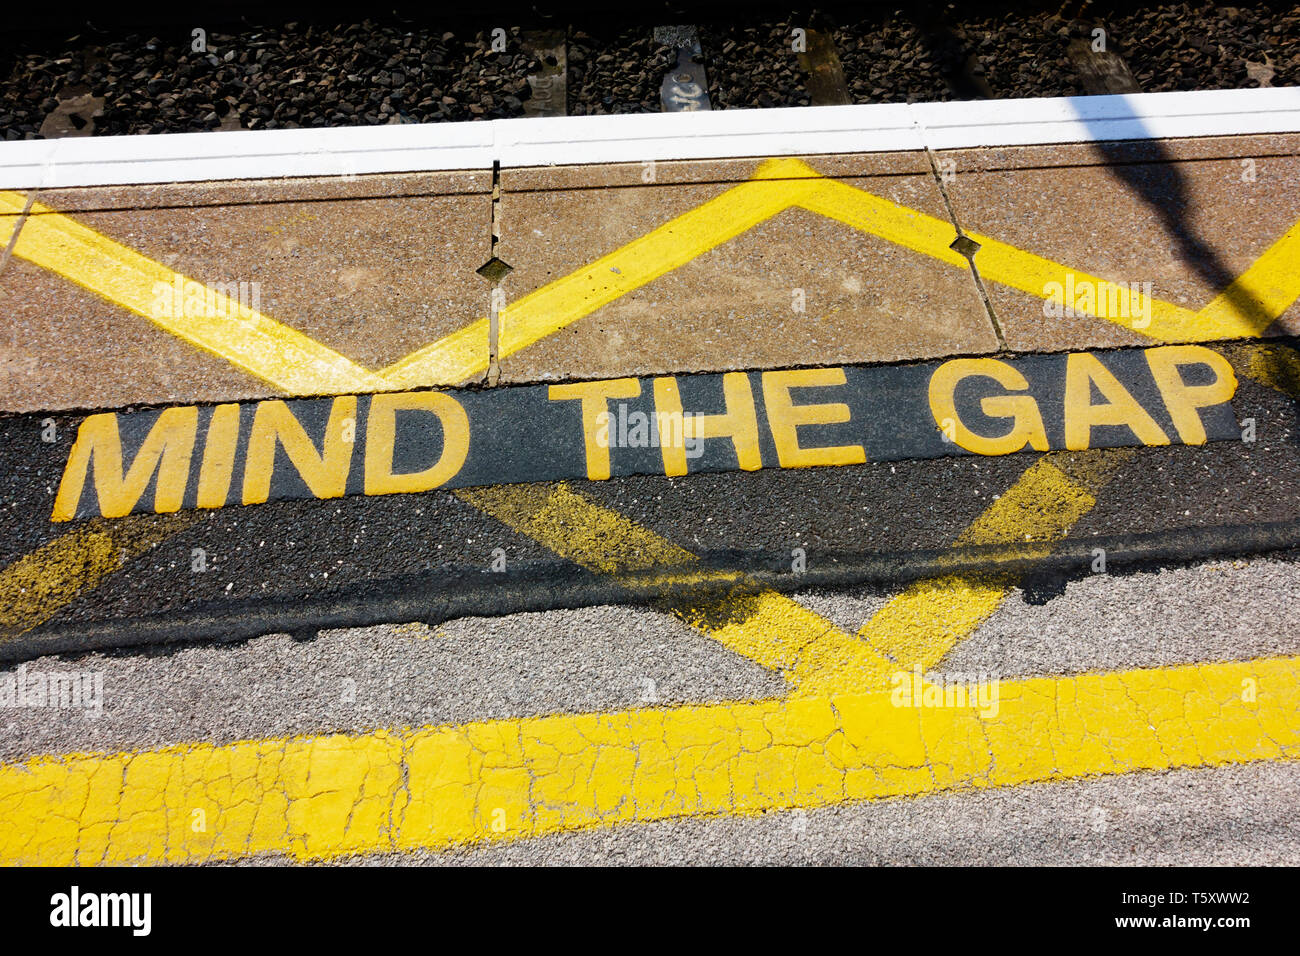 """Mind the gap"" warning sign on the railway platform edge. Stock Photo"